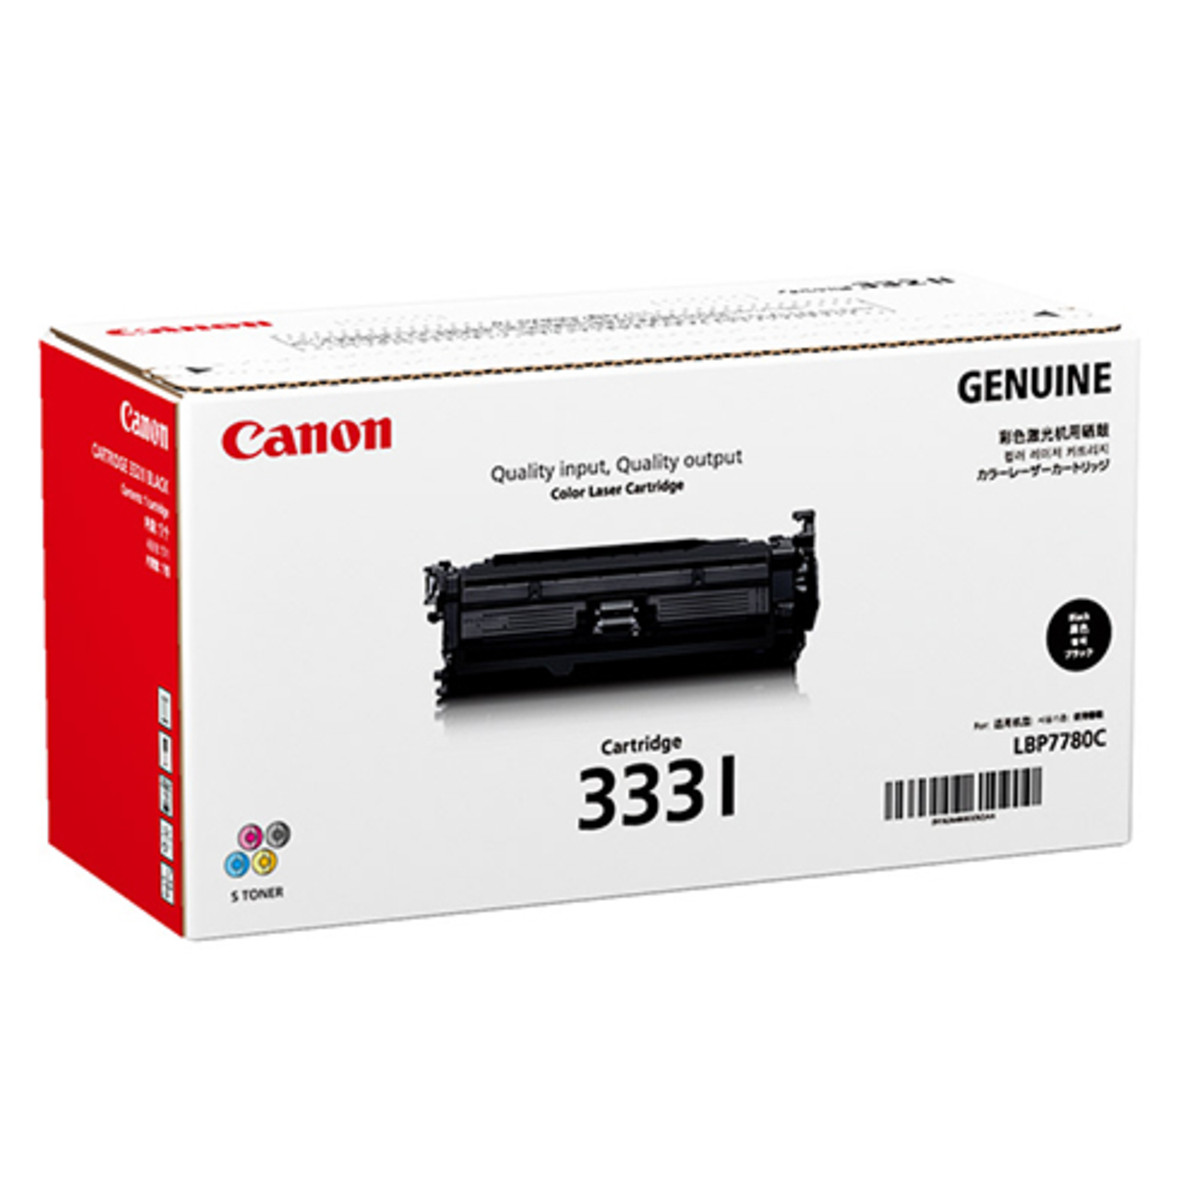 Canon CART-333I Black Toner Cartridge - High Yield